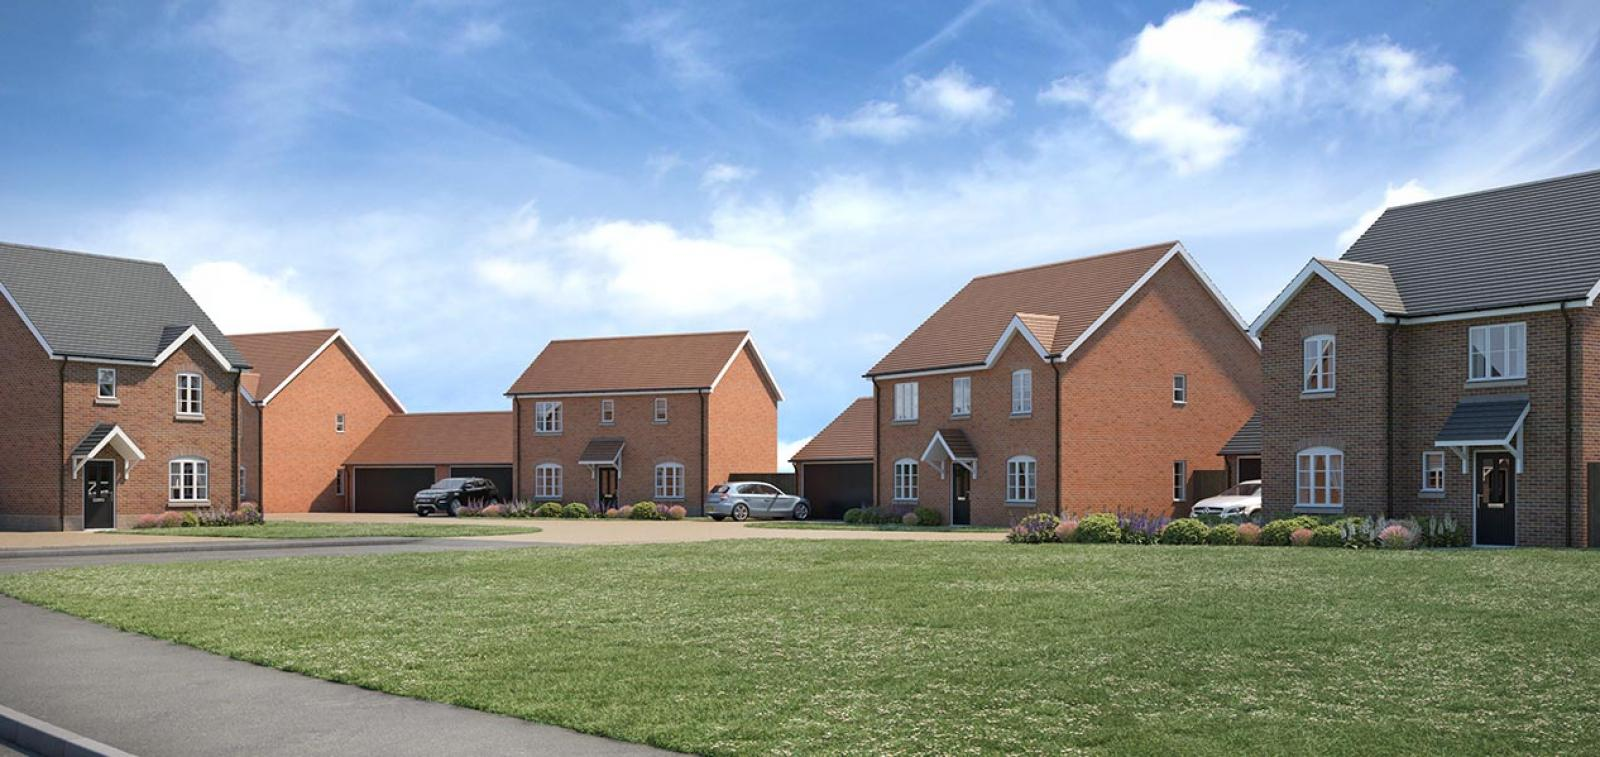 A computer generated preview of Newlands housing development.